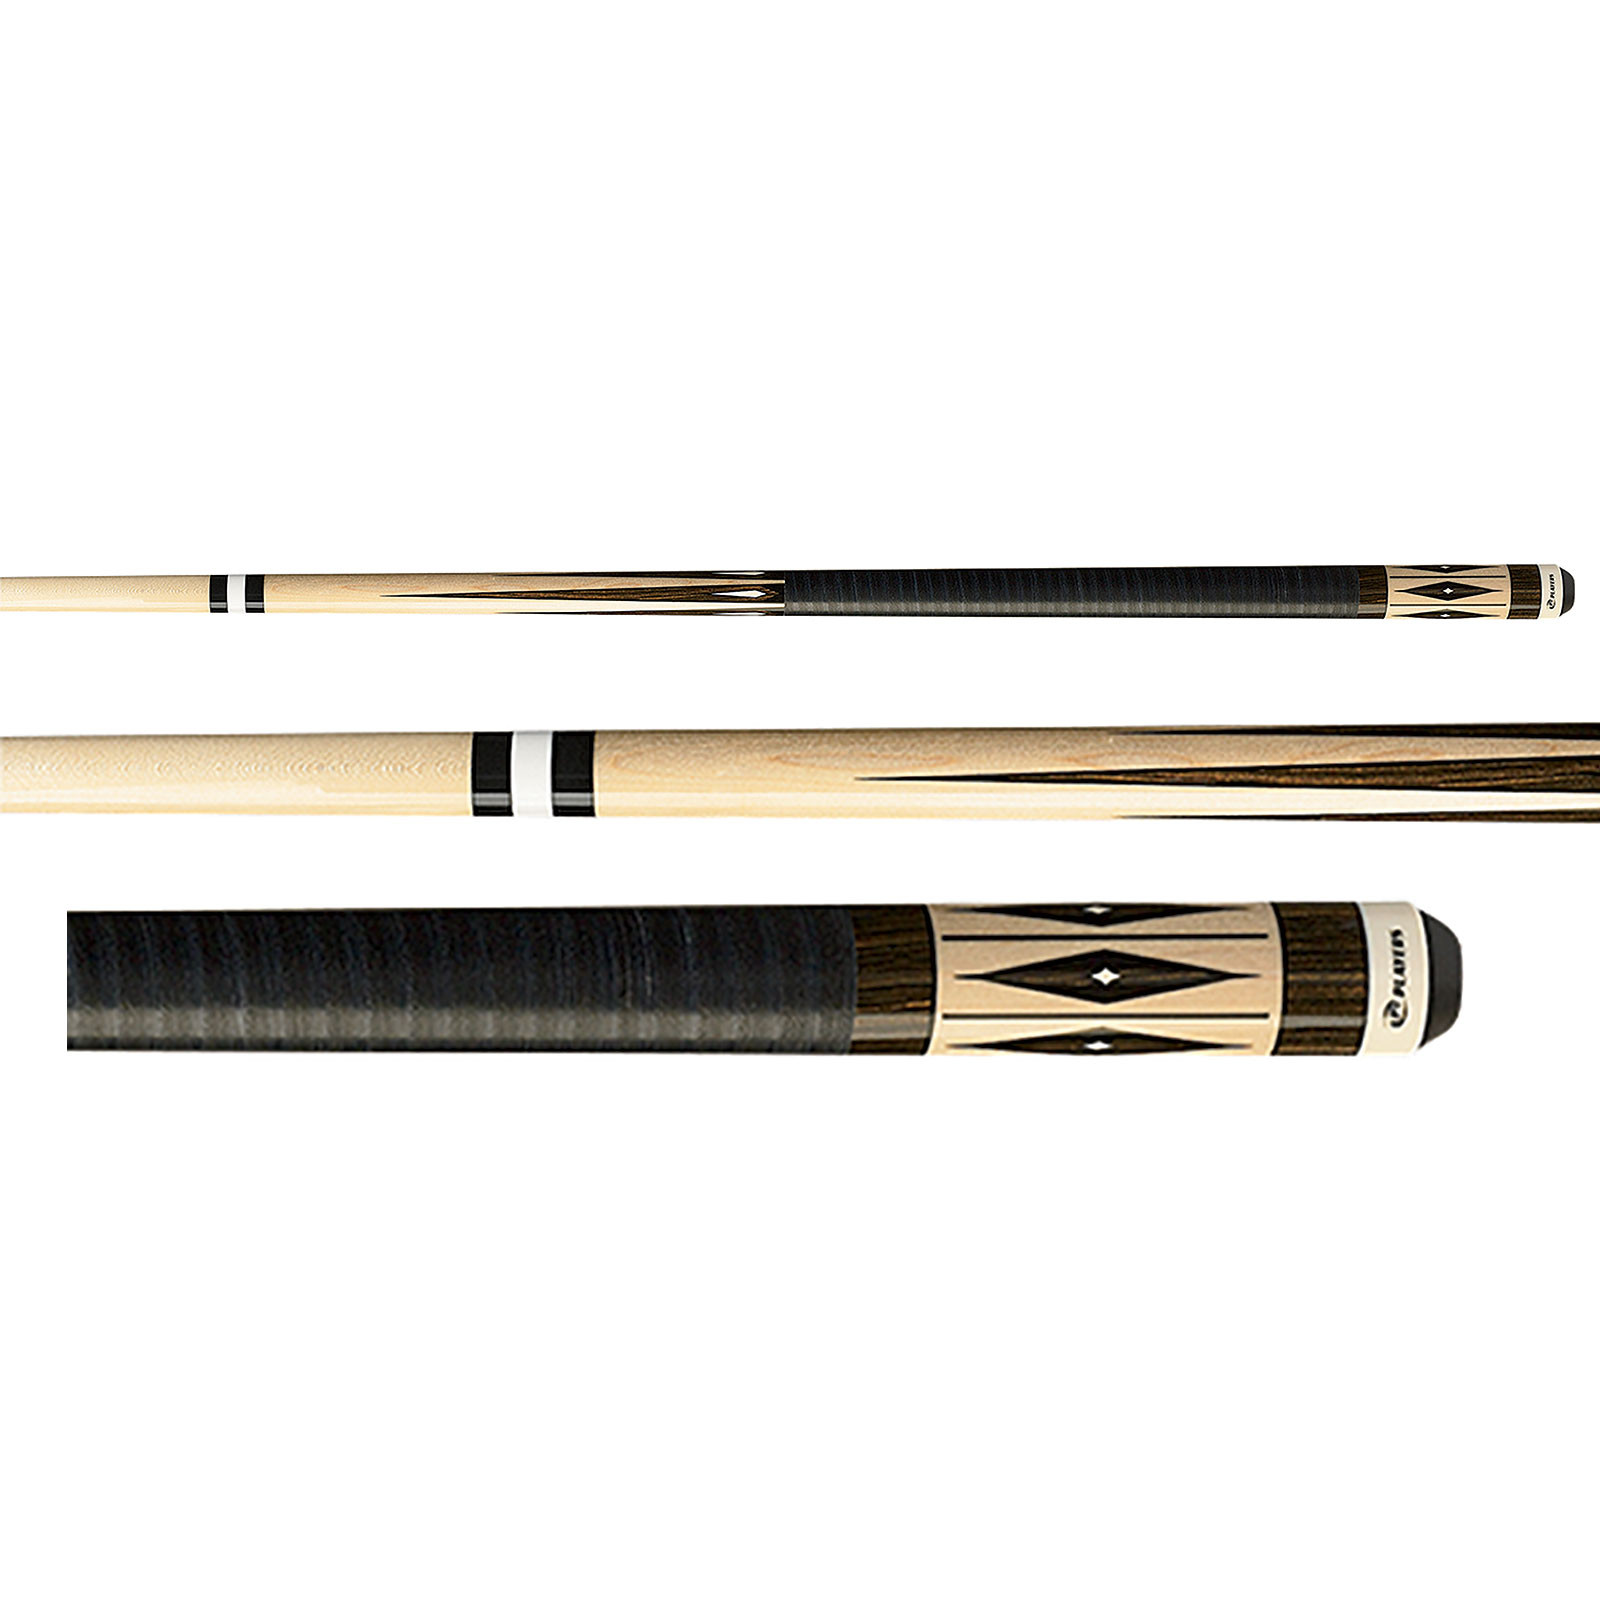 Players G-3384 Maple and Zebrawood Pool Cue Stick